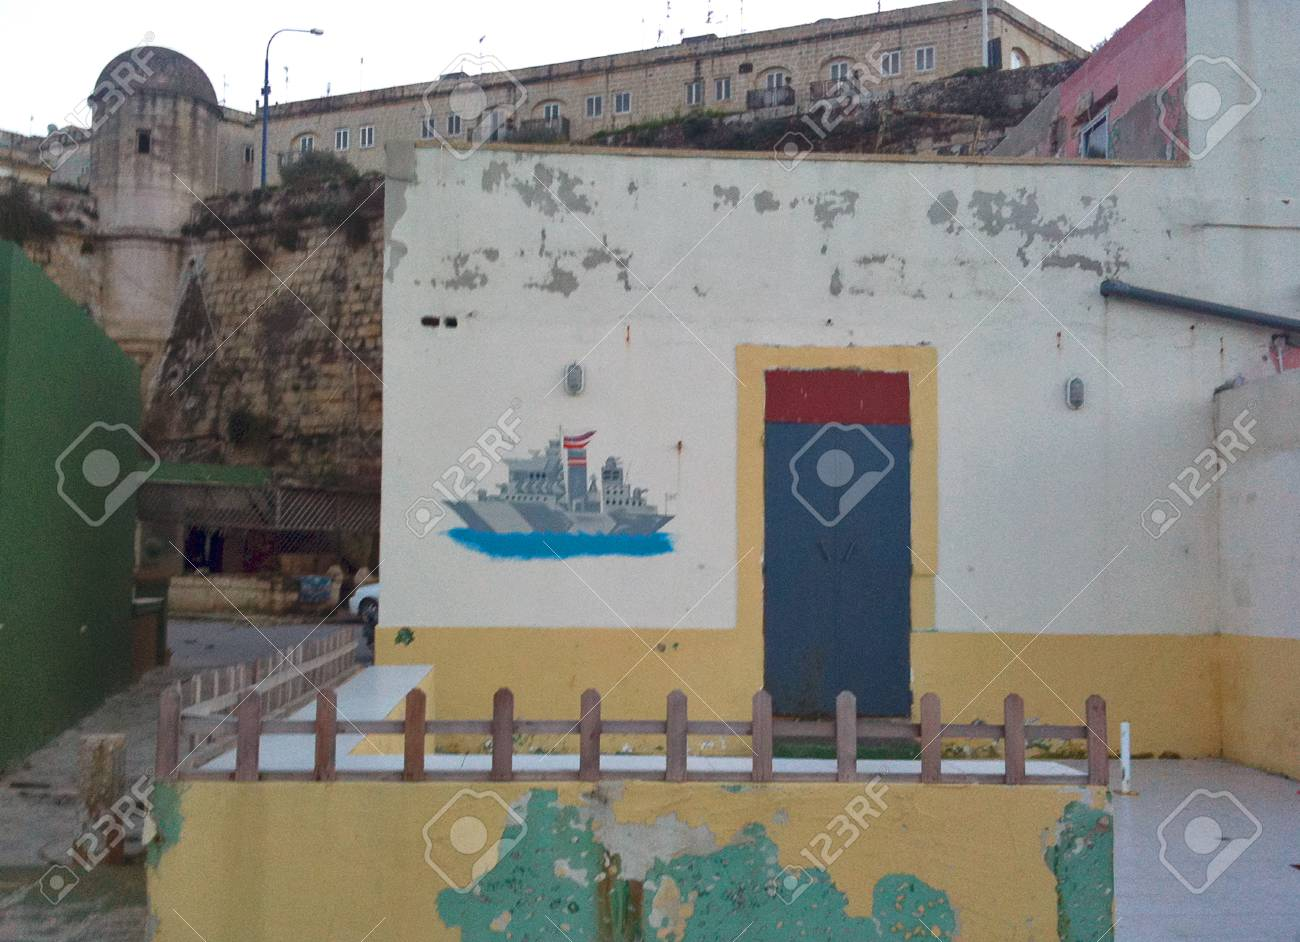 Building in a fishing village located in Malta - 34391435